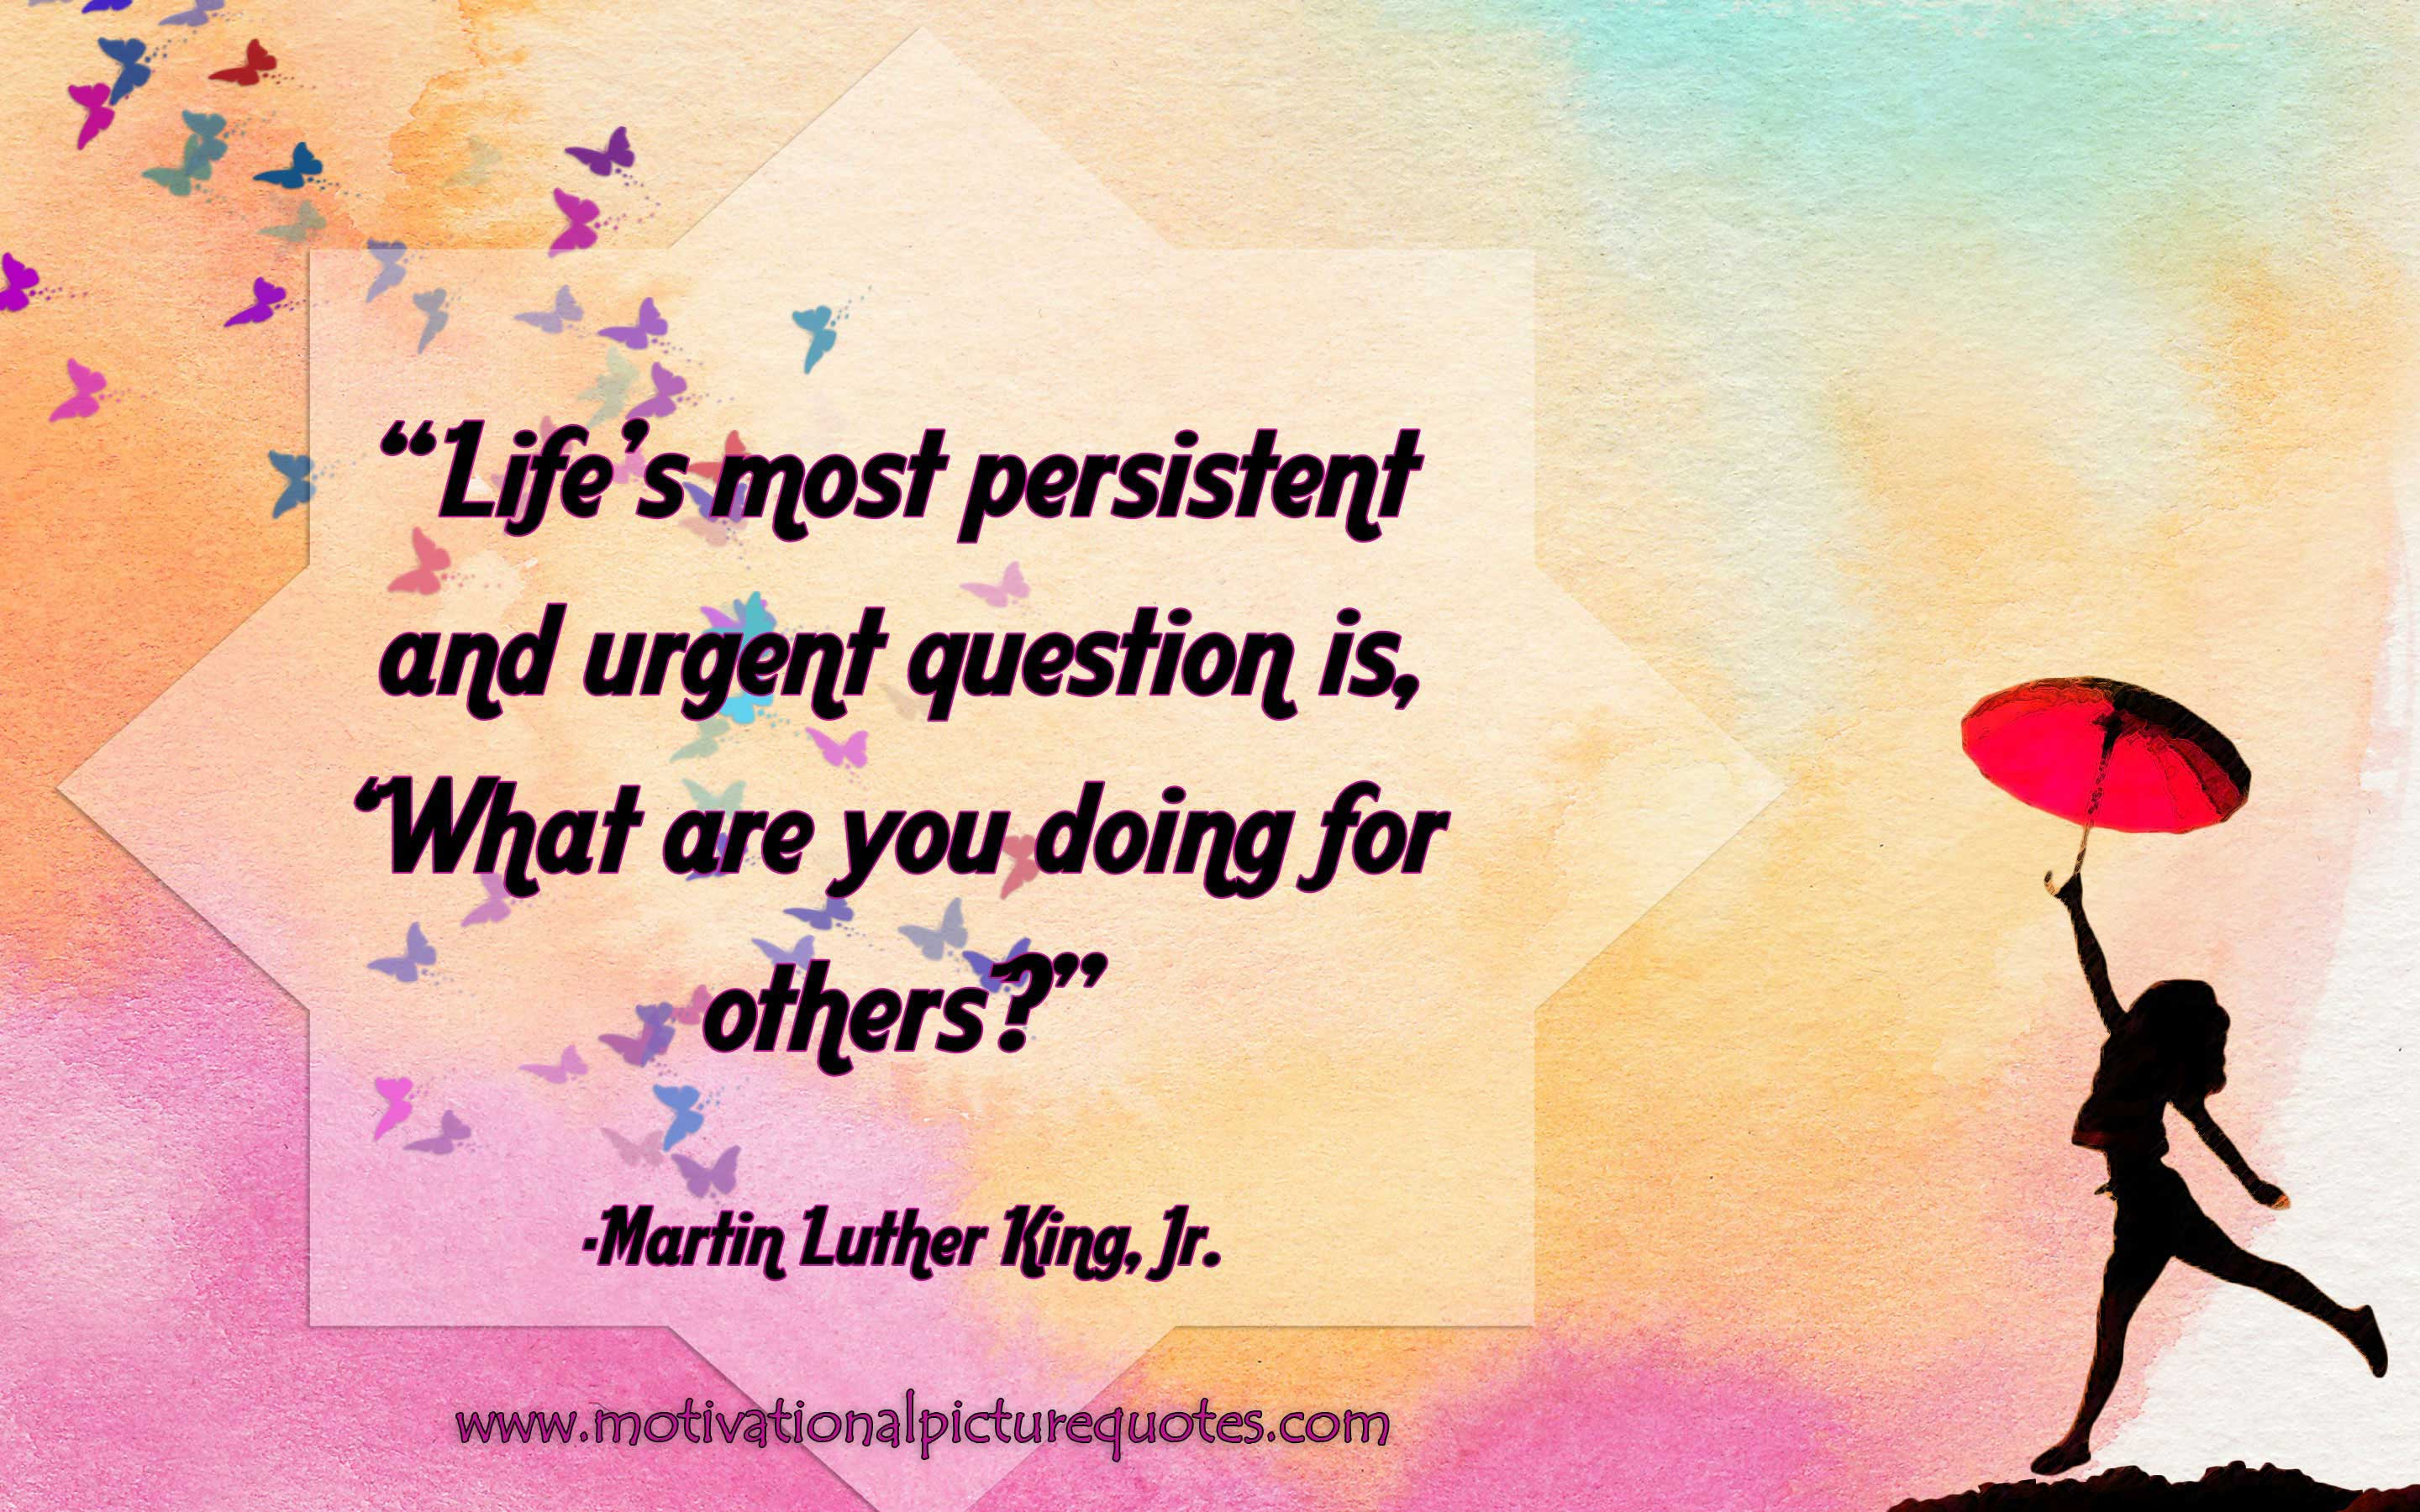 Amazing Life Quotes Images: 50+ Best Life Quotes Images For Free Download